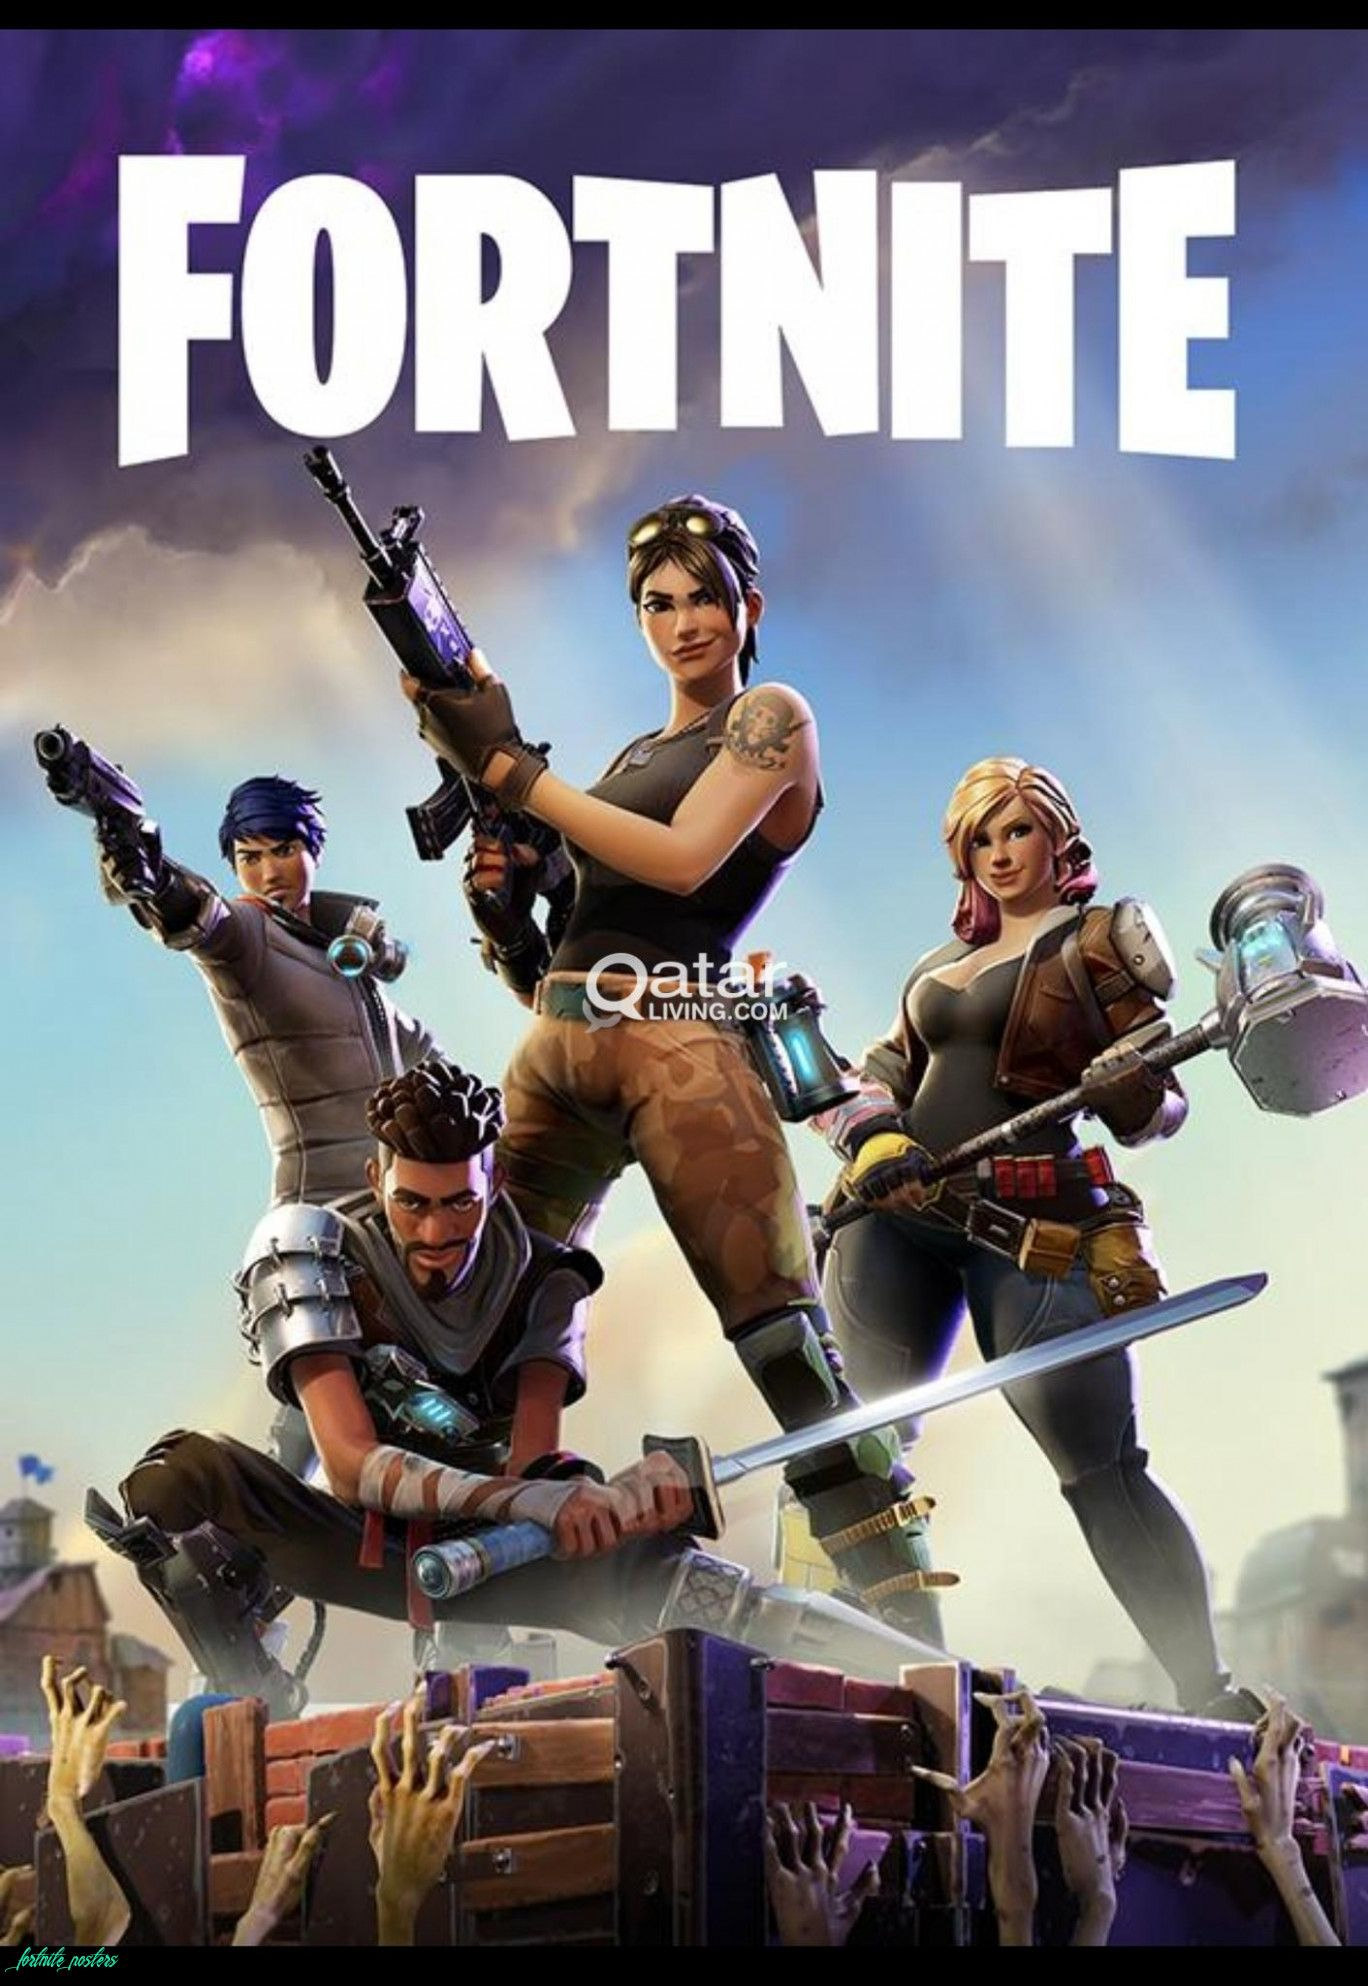 Learn The Truth About Fortnite Posters In The Next 11 Seconds Fortnite Posters In 2020 Fortnite Playstation 4 Epic Games